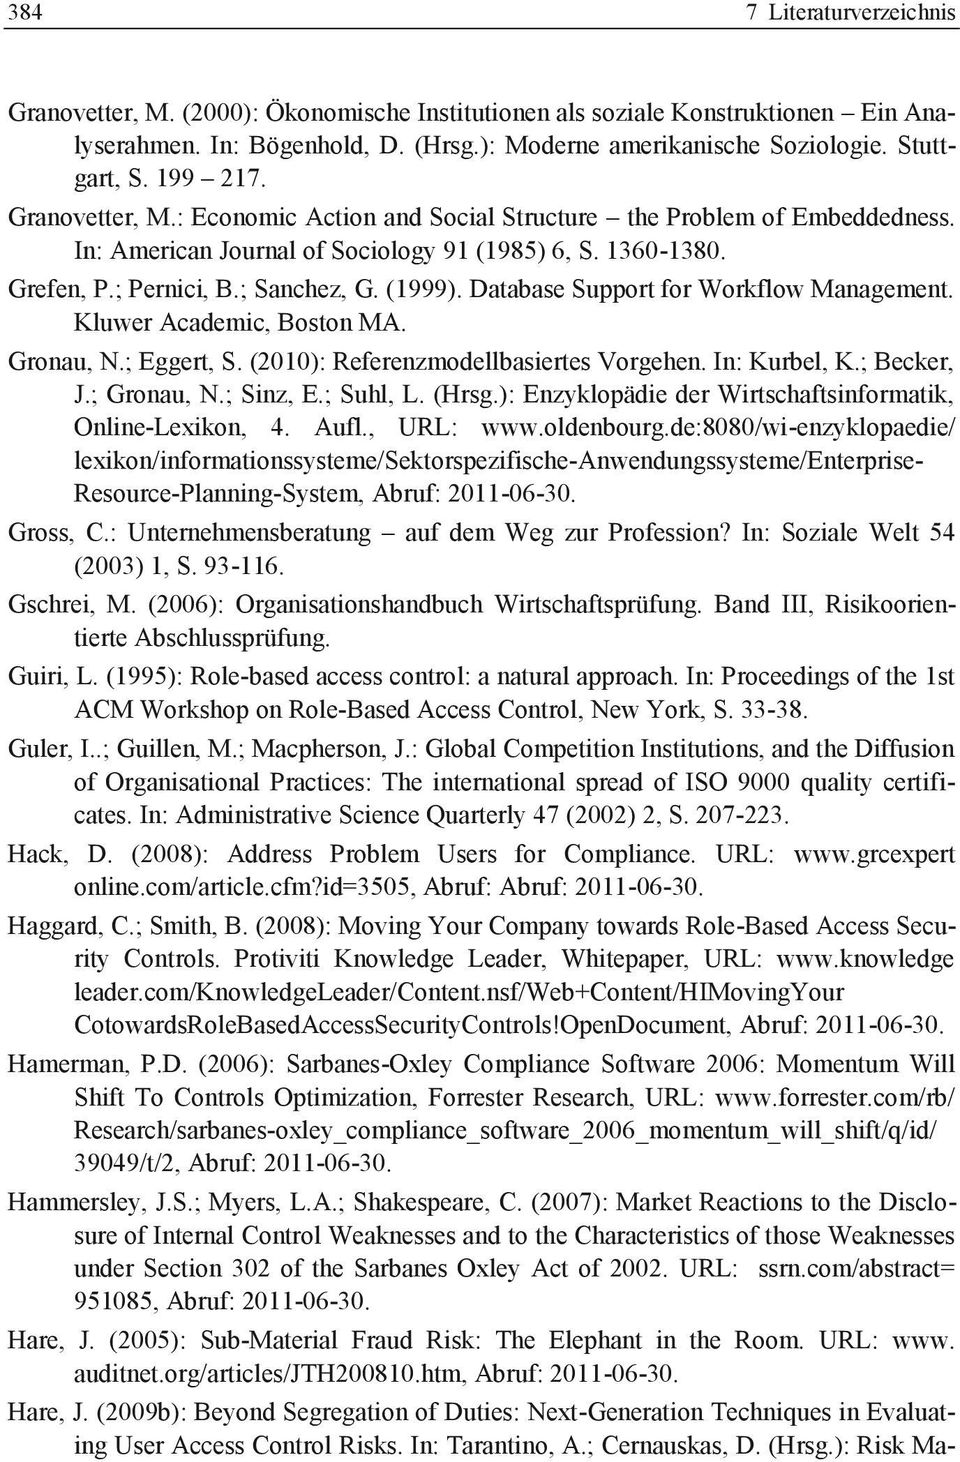 Database Support for Workflow Management. Kluwer Academic, Boston MA. Gronau, N.; Eggert, S. (2010): Referenzmodellbasiertes Vorgehen. In: Kurbel, K.; Becker, J.; Gronau, N.; Sinz, E.; Suhl, L. (Hrsg.